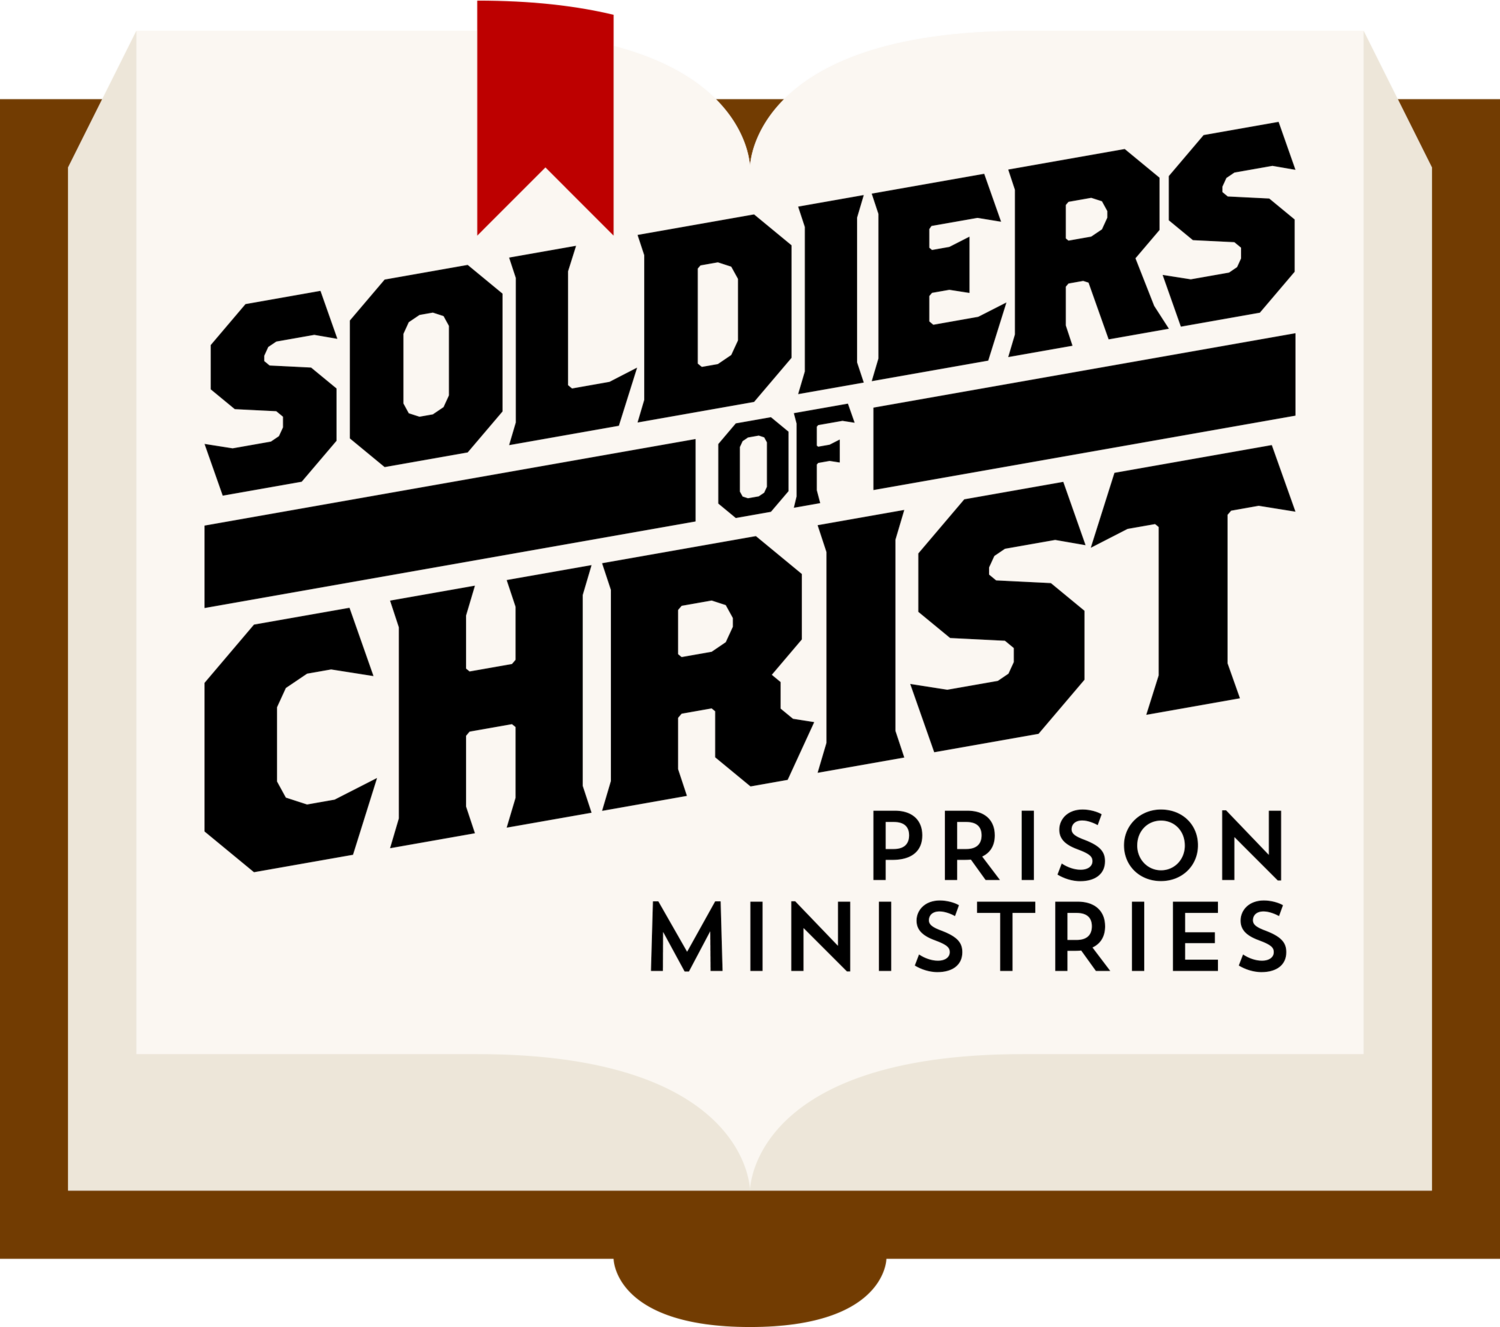 STUDENT PRAYER REQUESTS June 30, 2018 — Soldiers of Christ